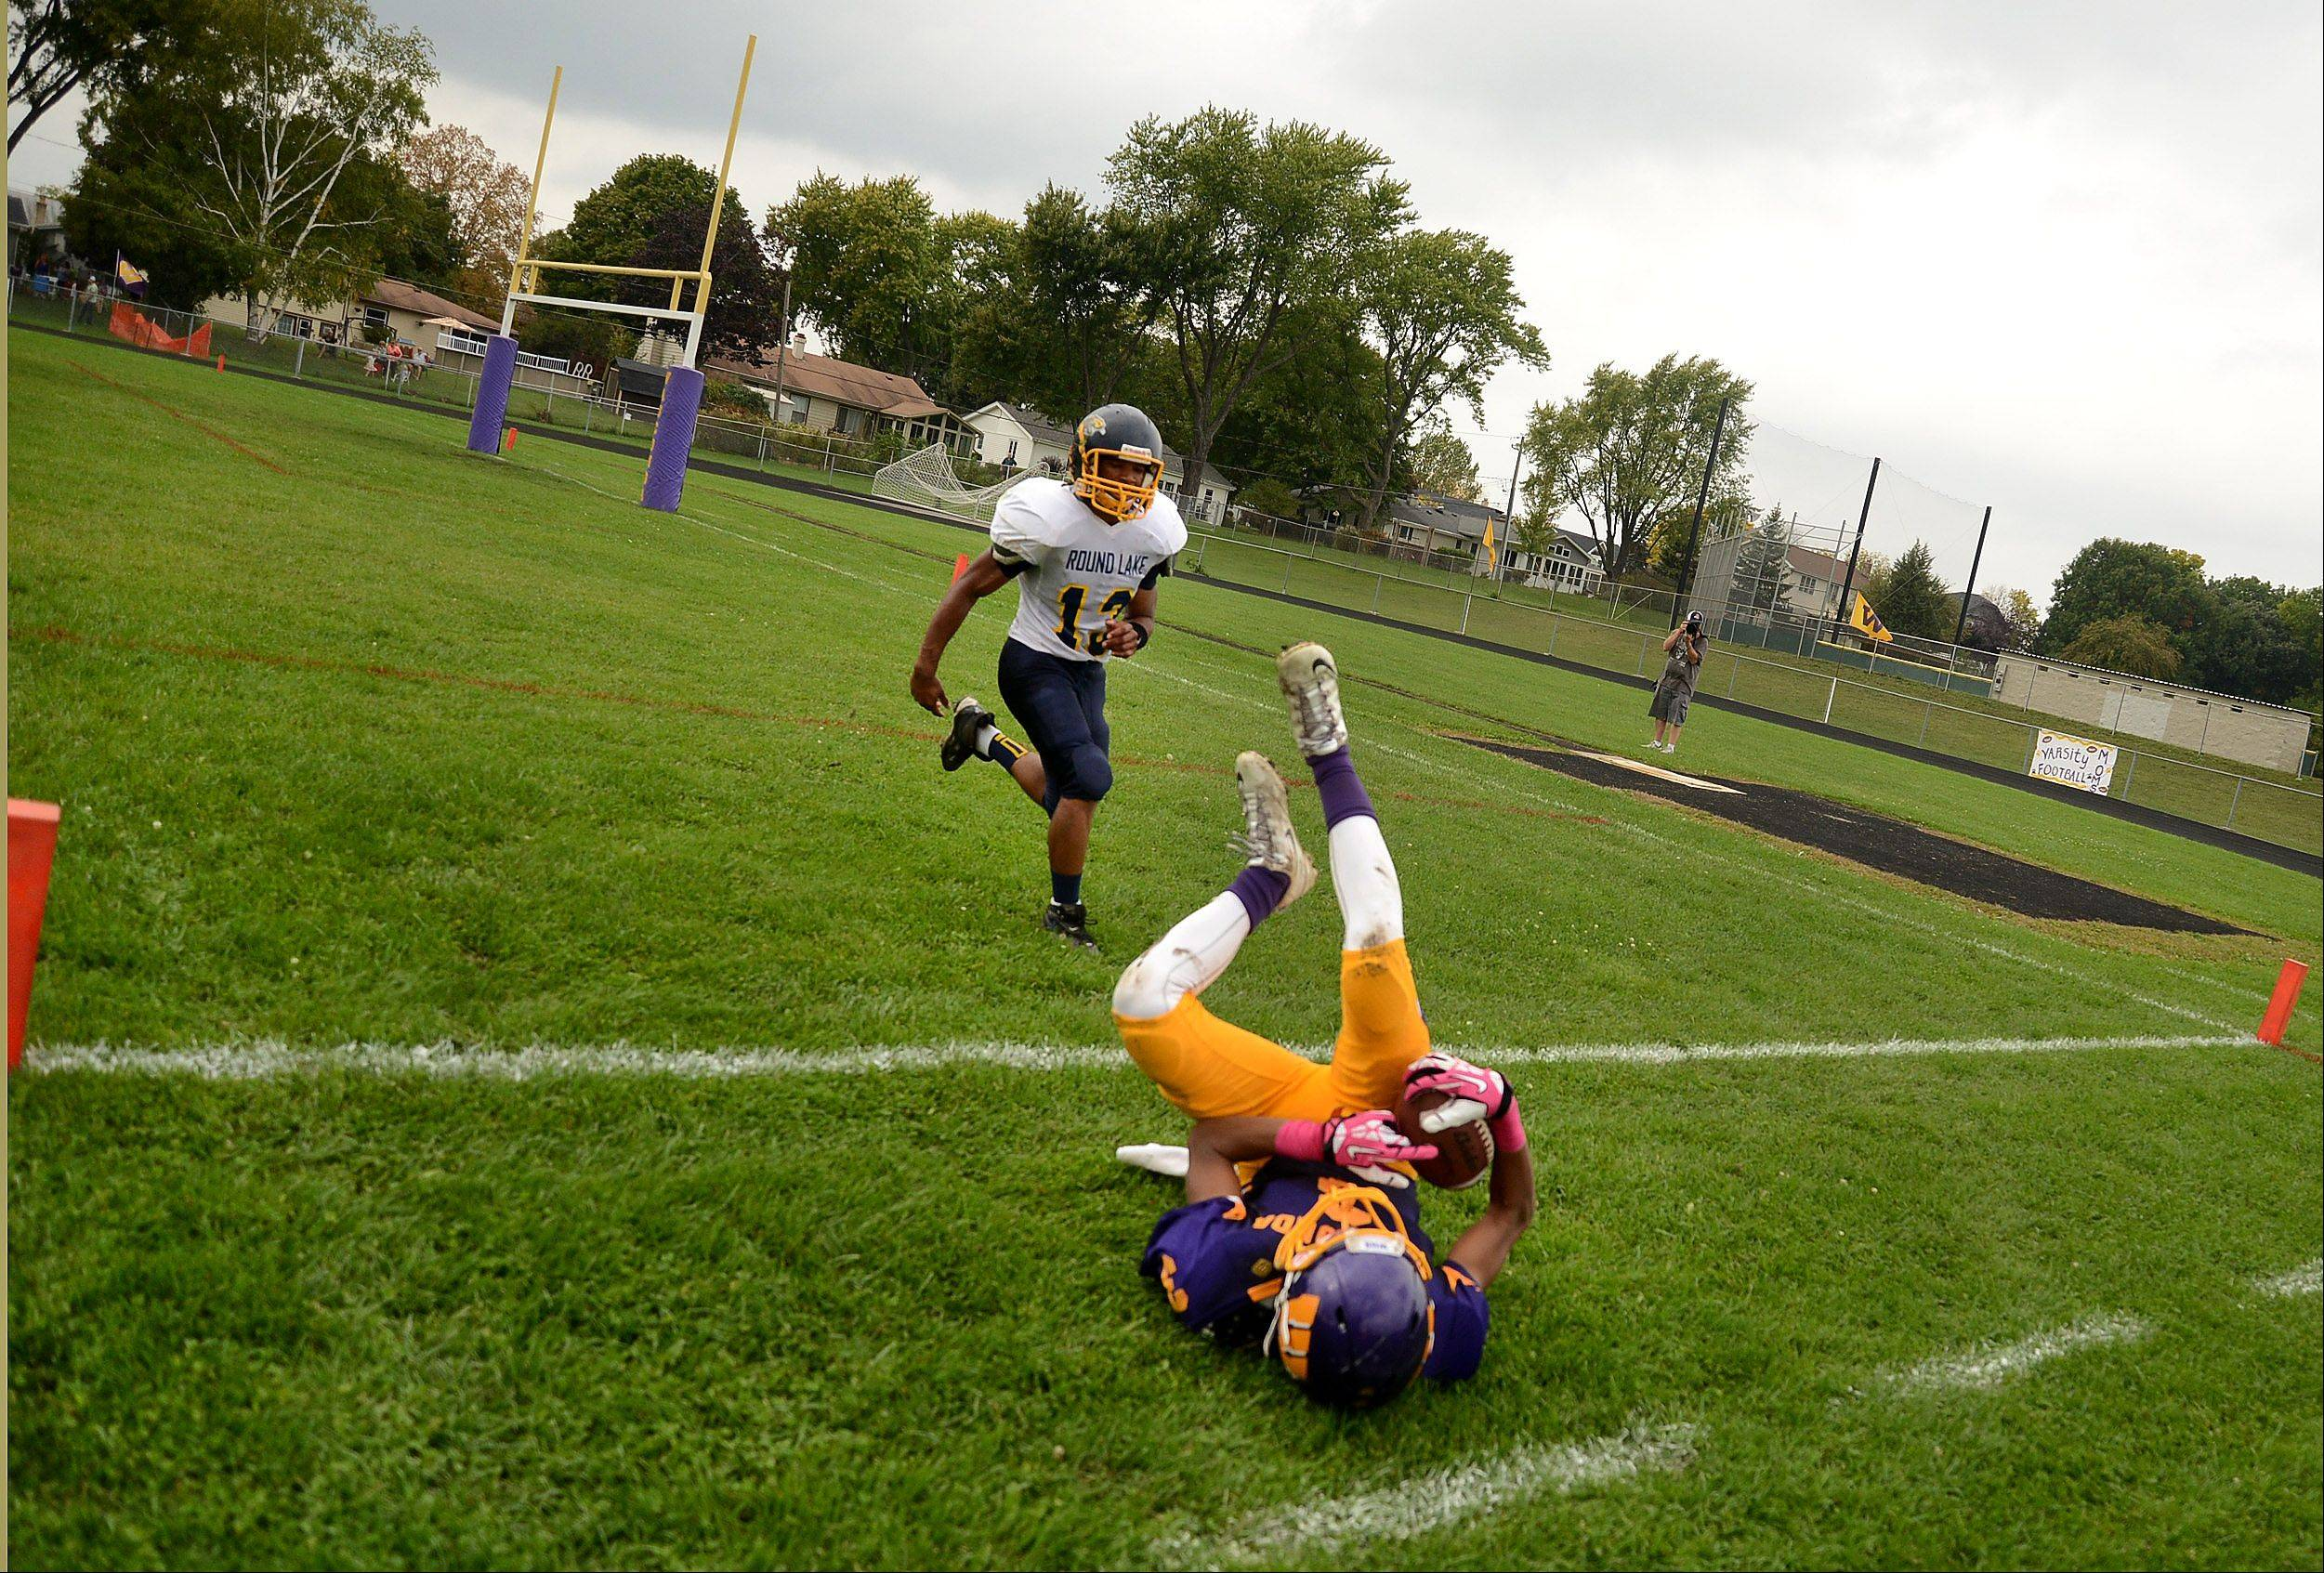 Wauconda's Josh Anderson keeps control of the ball as he rolls through the end zone for a touchdown against Round Lake.